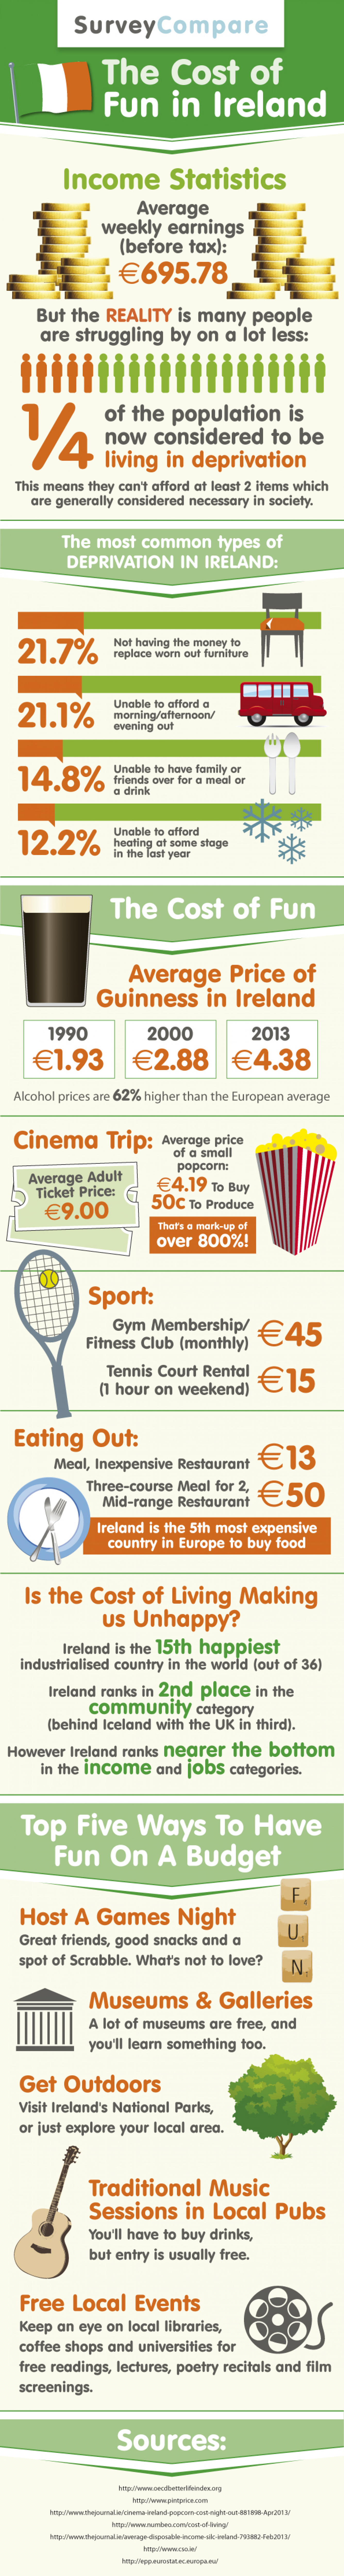 The Cost Of Fun In Ireland Infographic